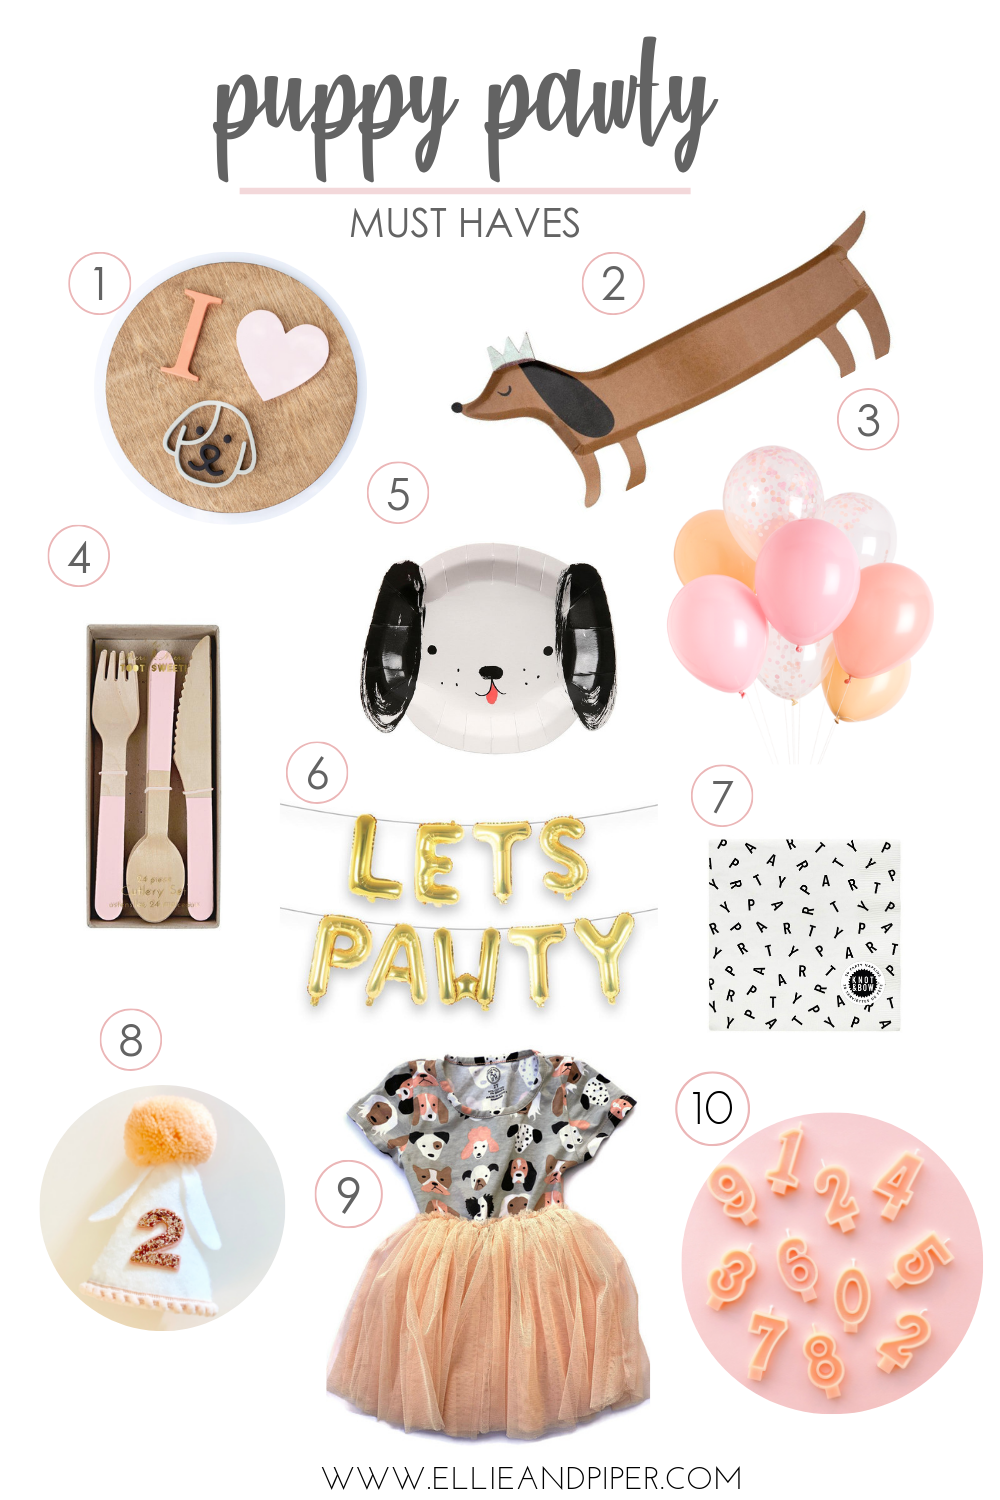 Puppy Pawty Must Haves